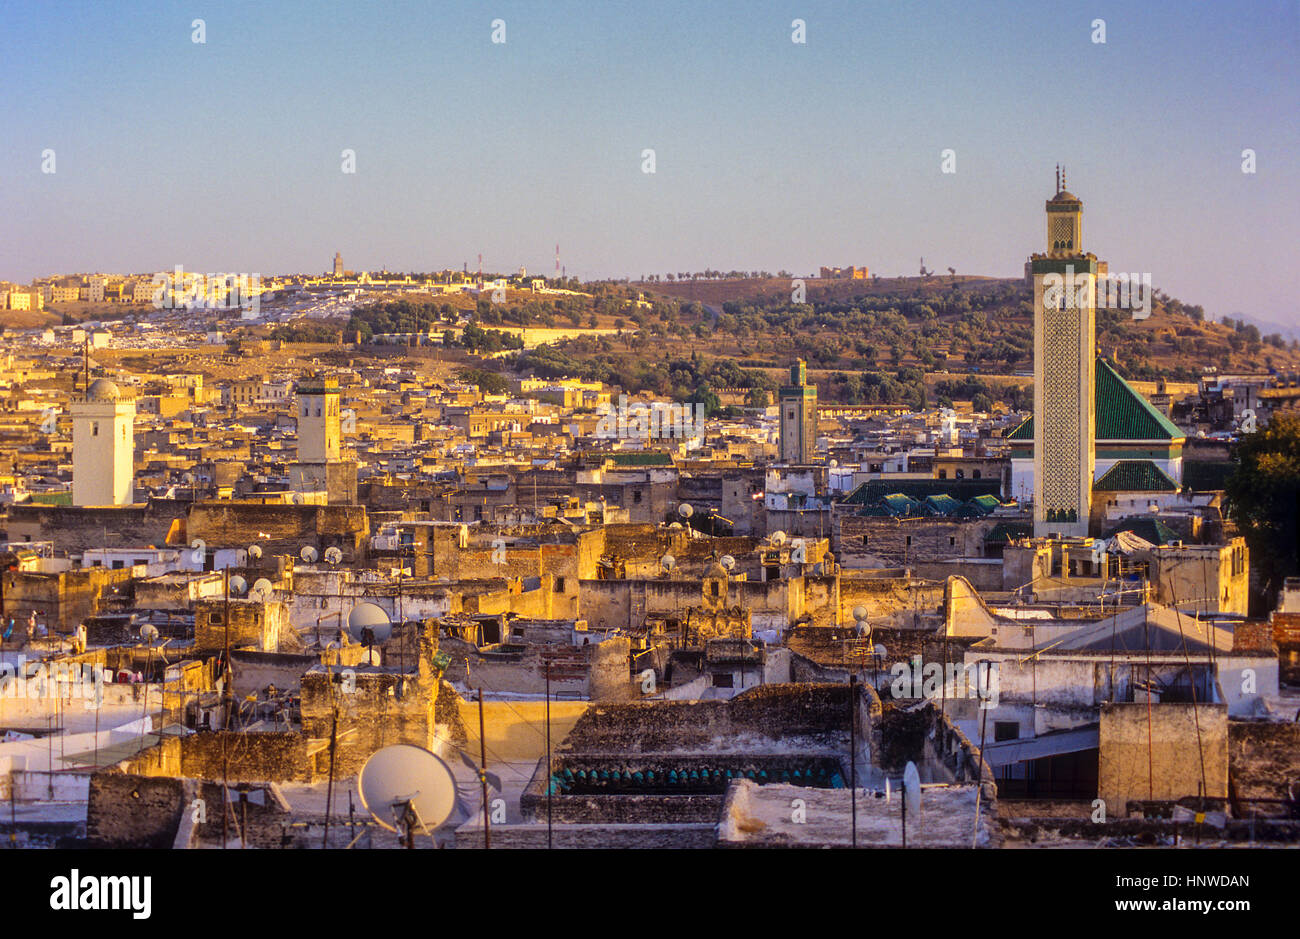 Sunset, skyline. Elevated view over the Medina, UNESCO World Heritage Site, Fez, Morocco, Africa. - Stock Image